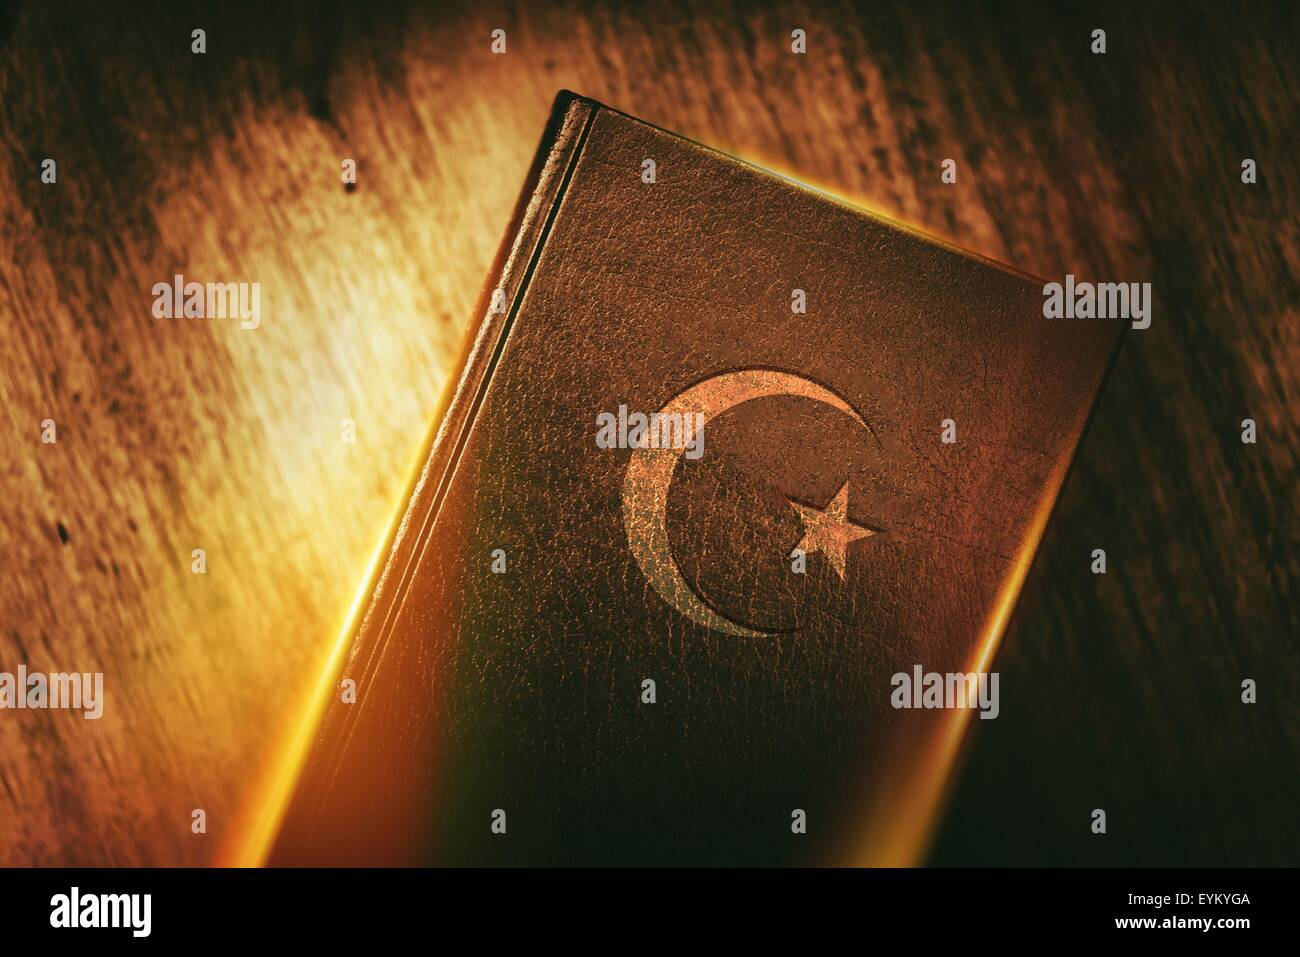 Islam Concept Book with Star and Crescent. Quran Religious Text of Islam Concept Photo. - Stock Image